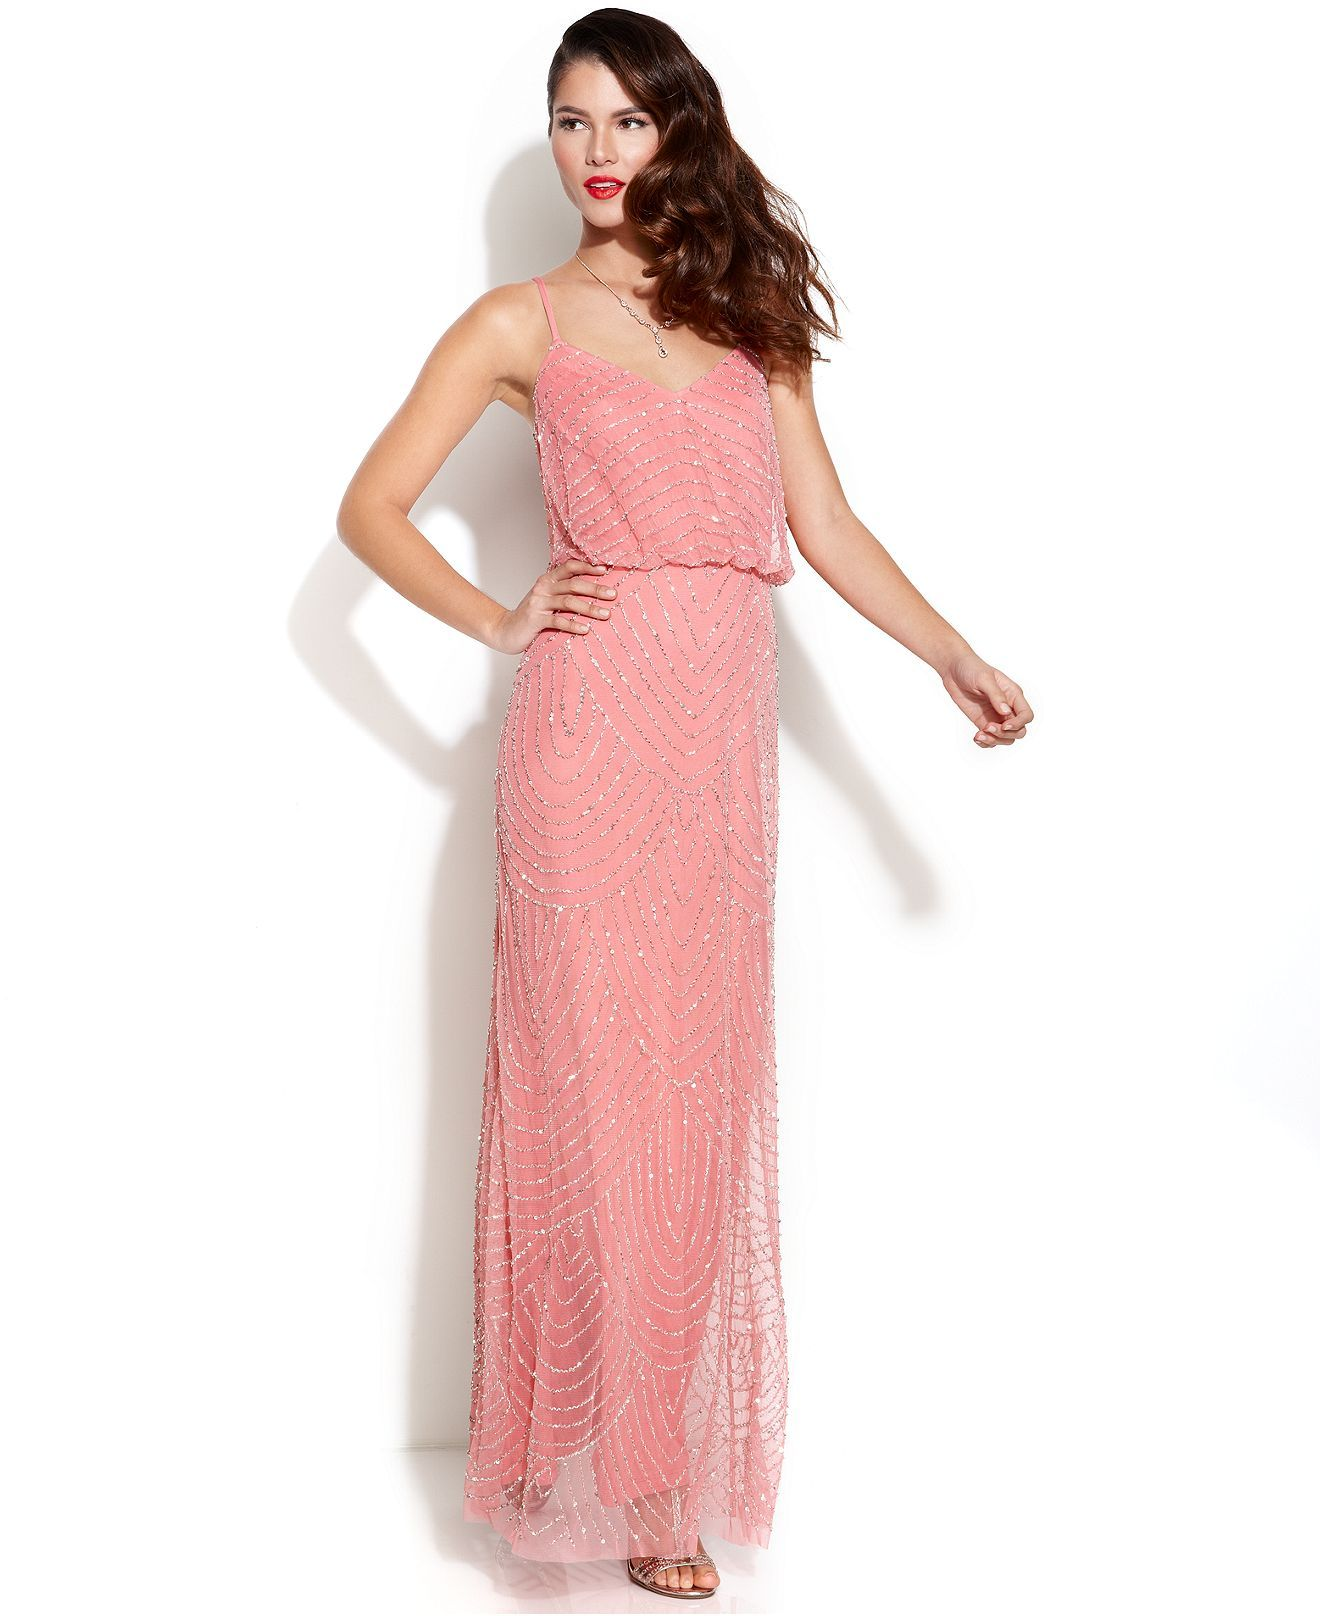 Adrianna Papell Sleeveless Beaded Blouson Gown - Juniors Prom ...